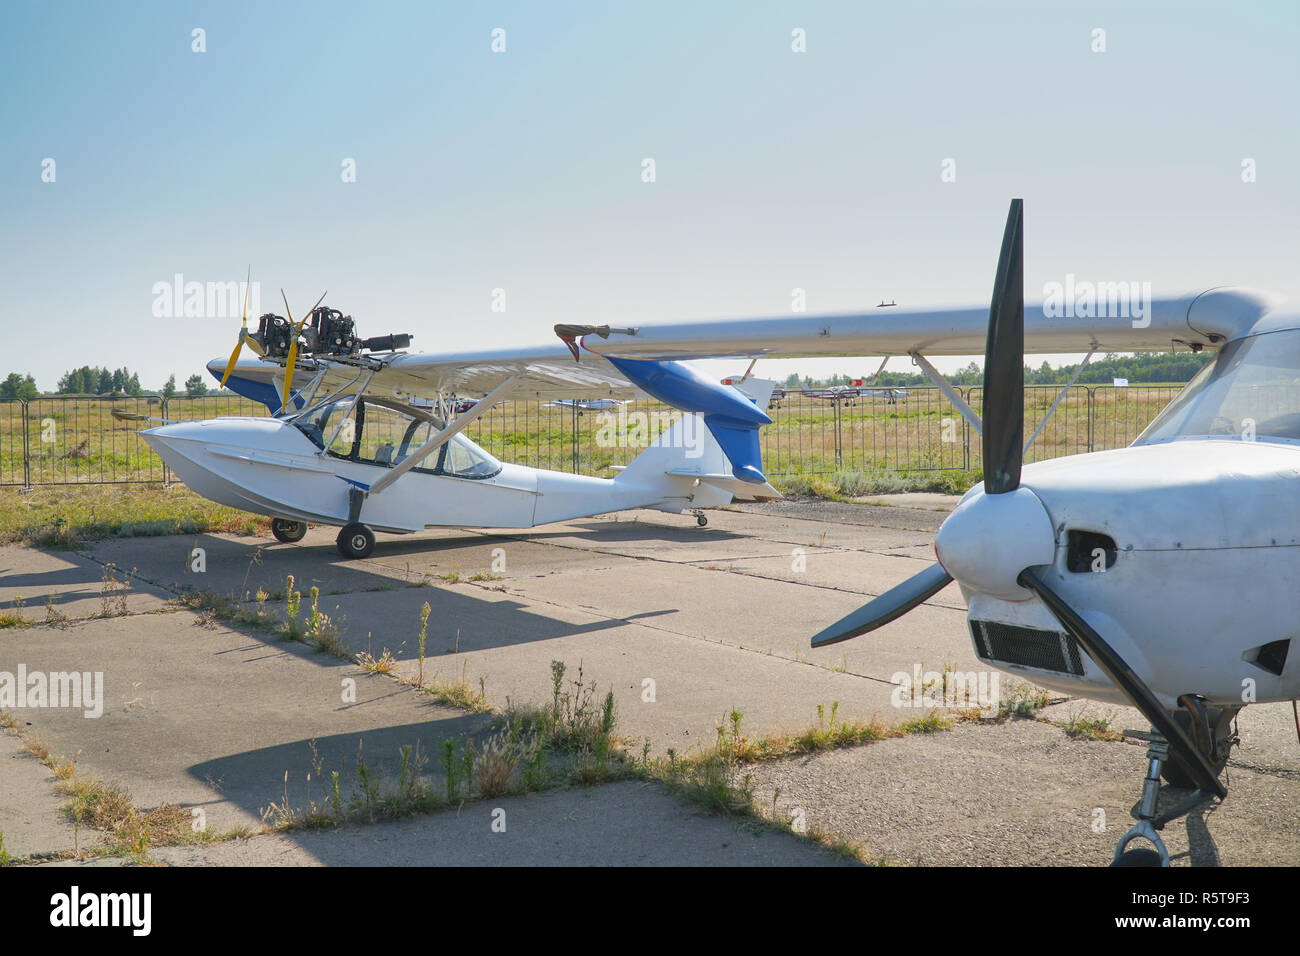 Light aircraft at the airport - Stock Image